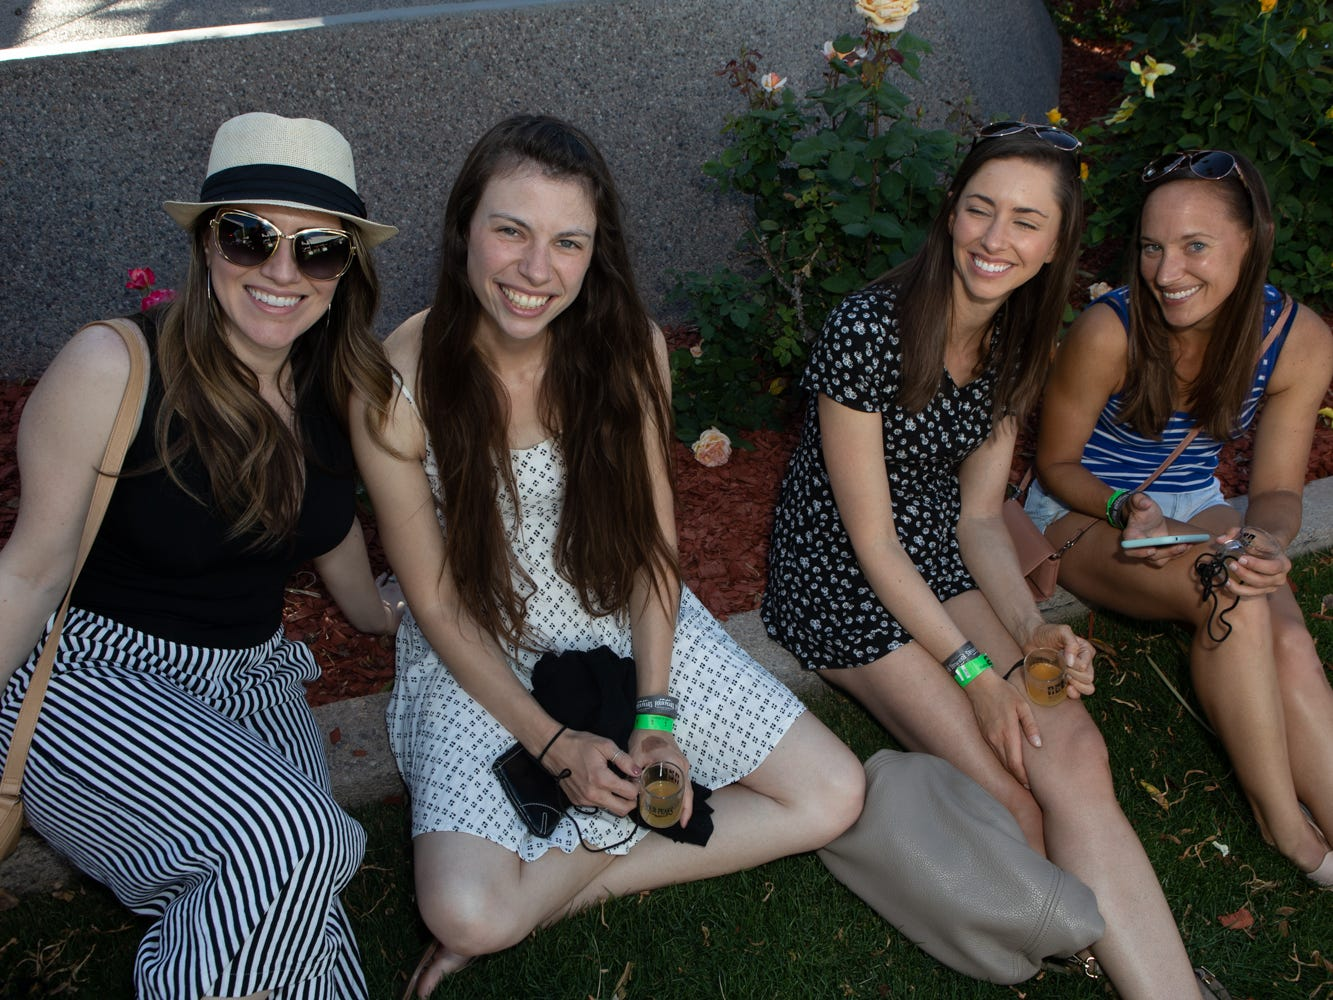 The lawn was a good place to hang out in at the Scottsdale Culinary Festival on April 13, 2019.